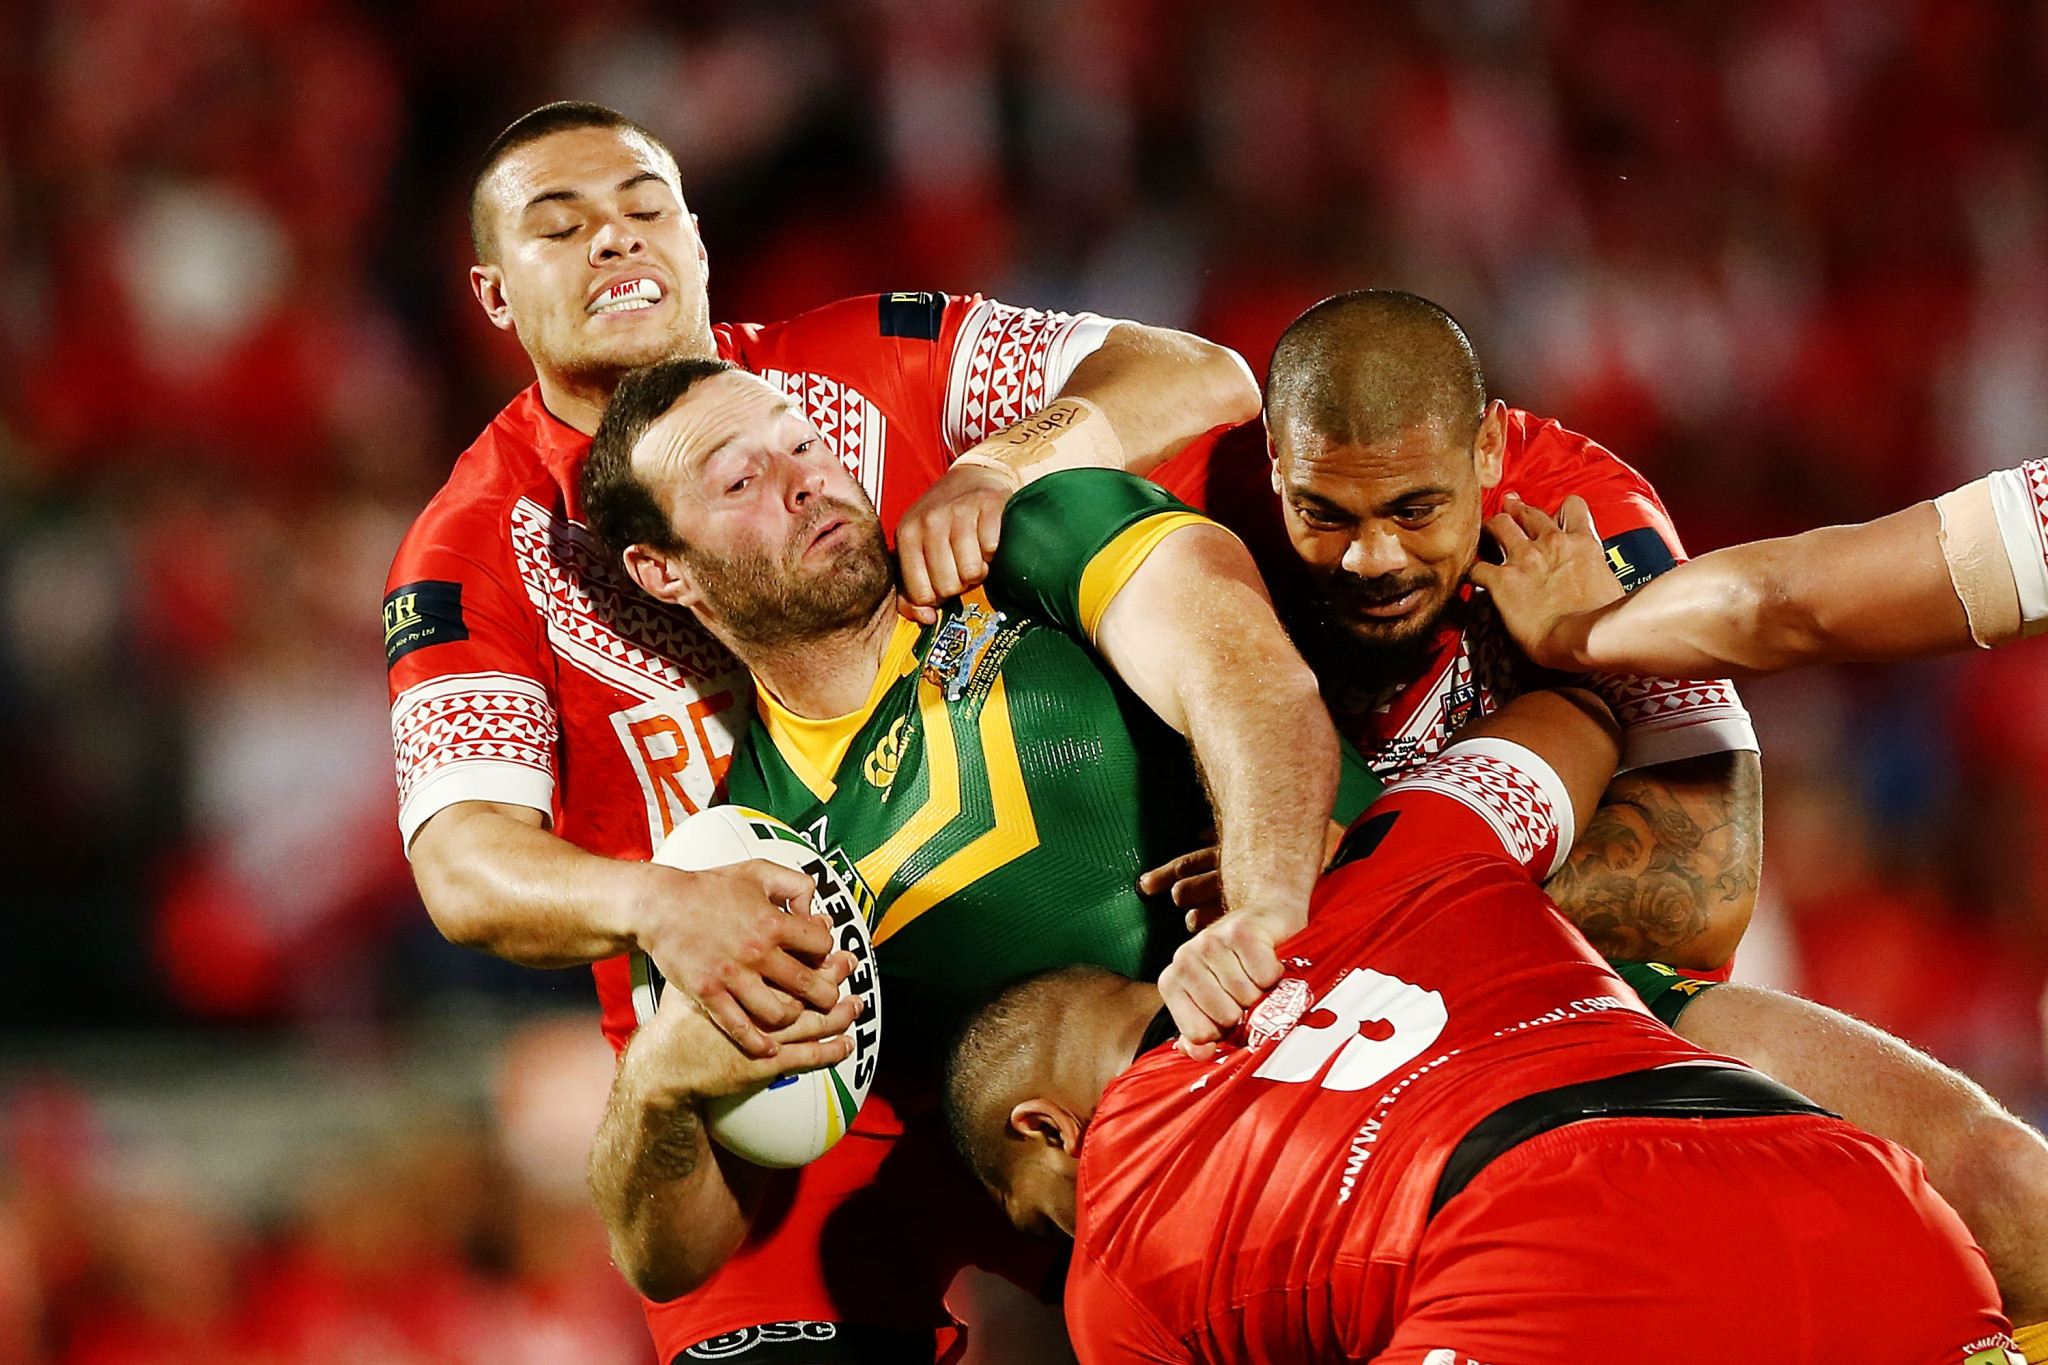 Boyd Cordner of Australia is tackled by Tuimoala Lolohea and Sika Manu of Tonga during the Test between Tonga and Australia in October last year ©Getty Images